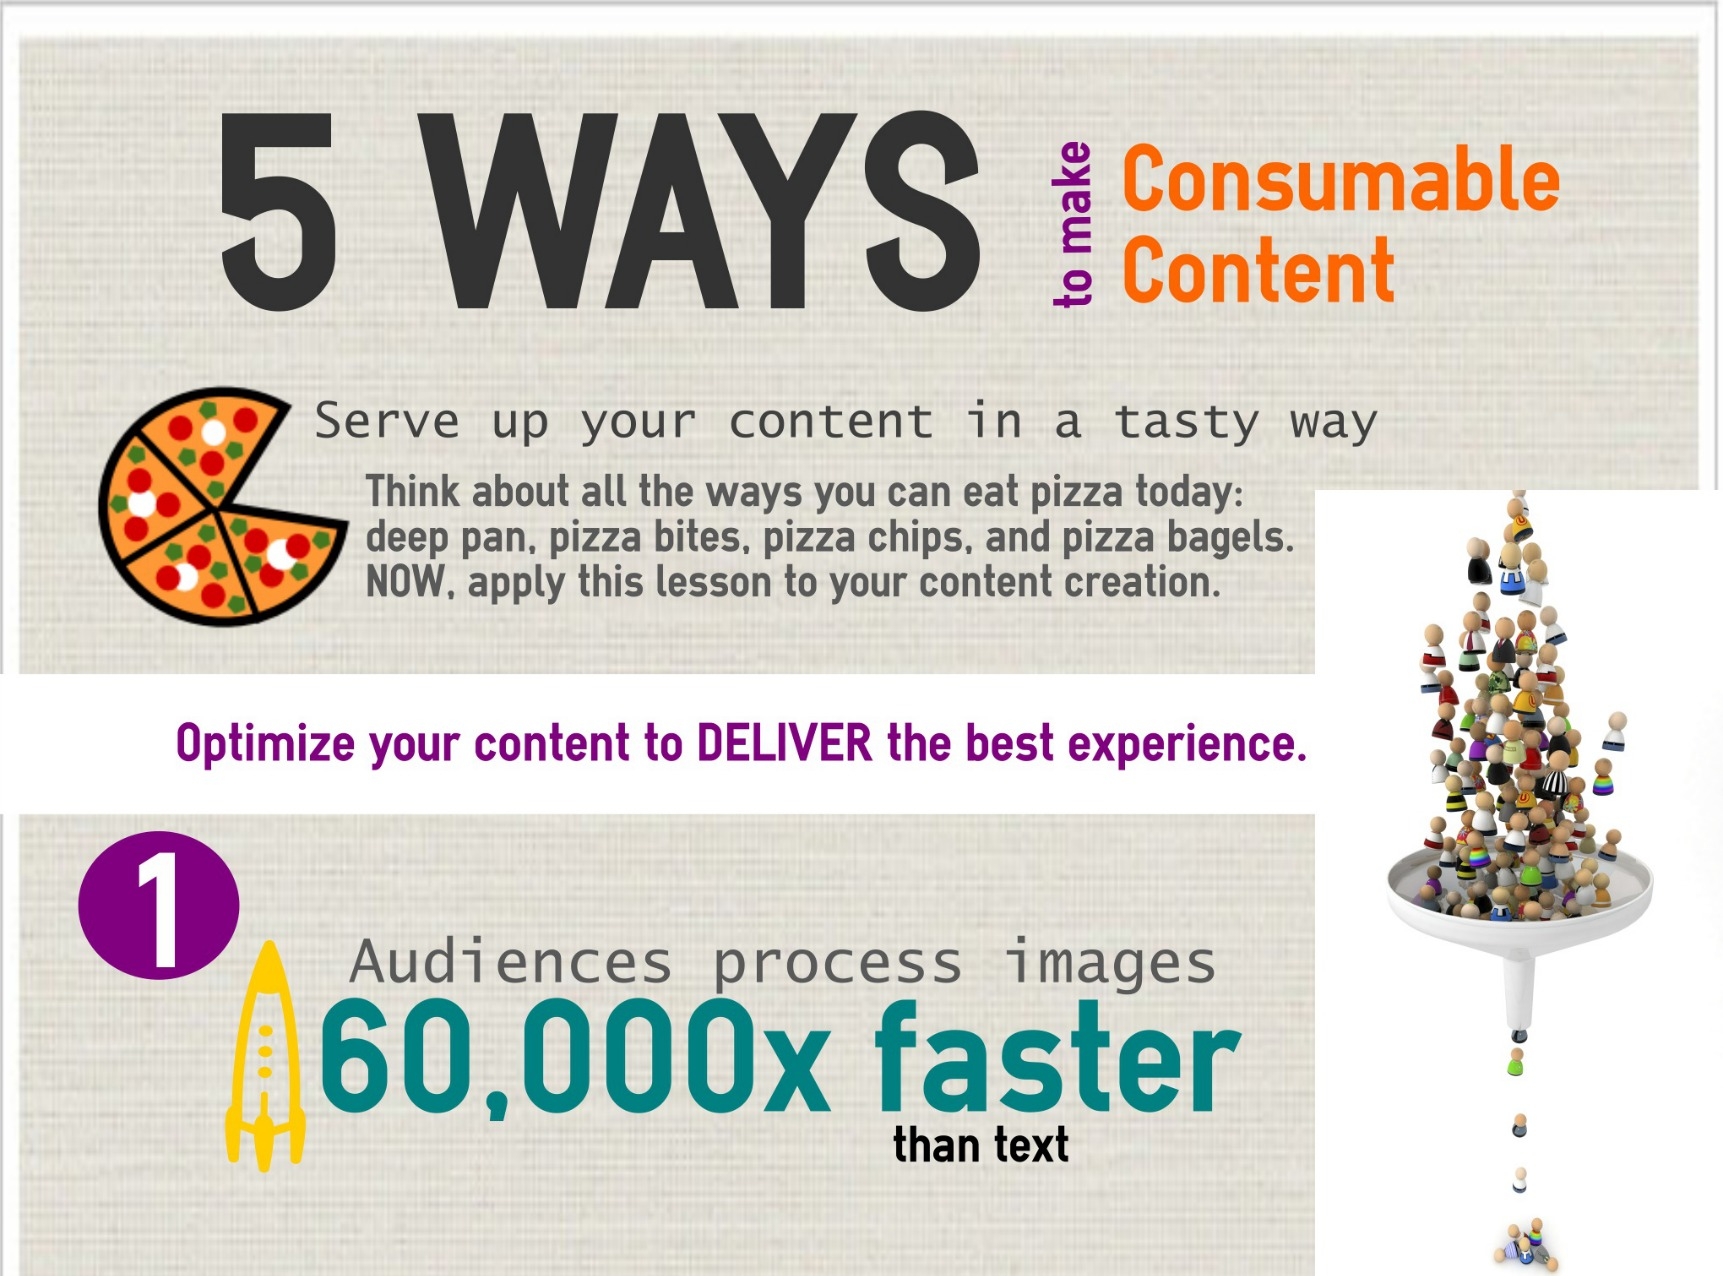 consumable content infographic